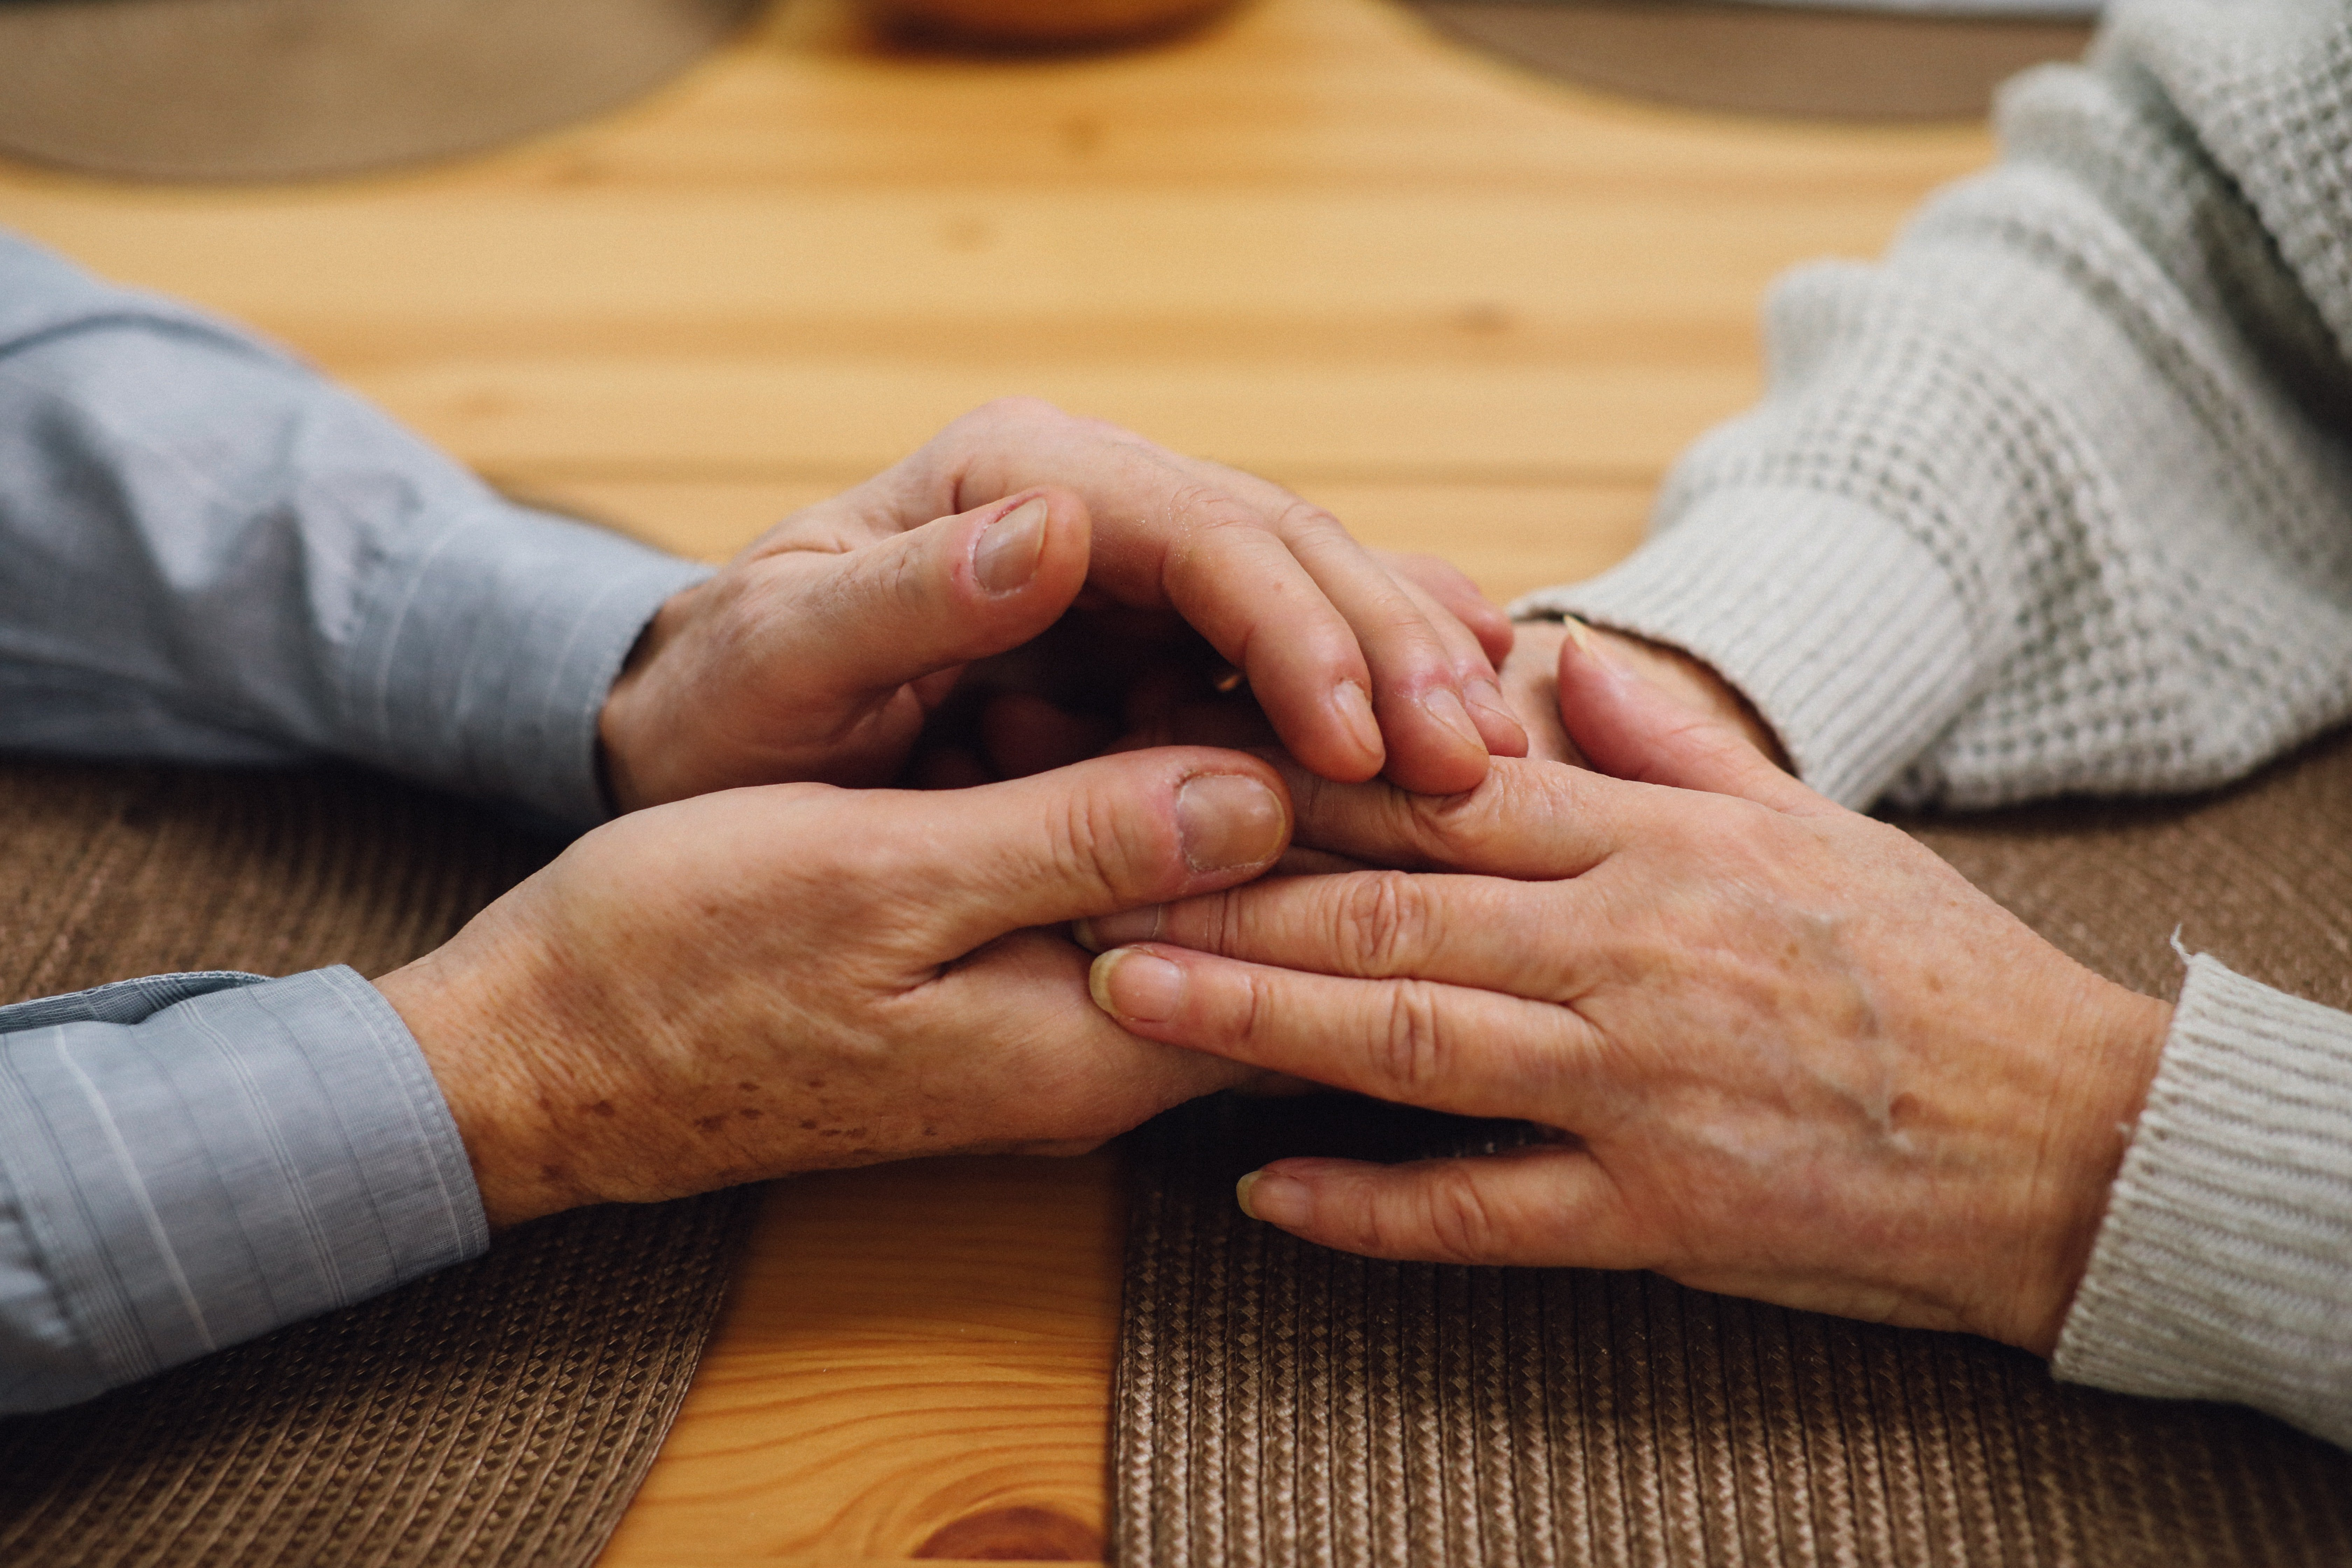 An older couple holding hands across a table.   Source: Pexels/ Tom Leishman